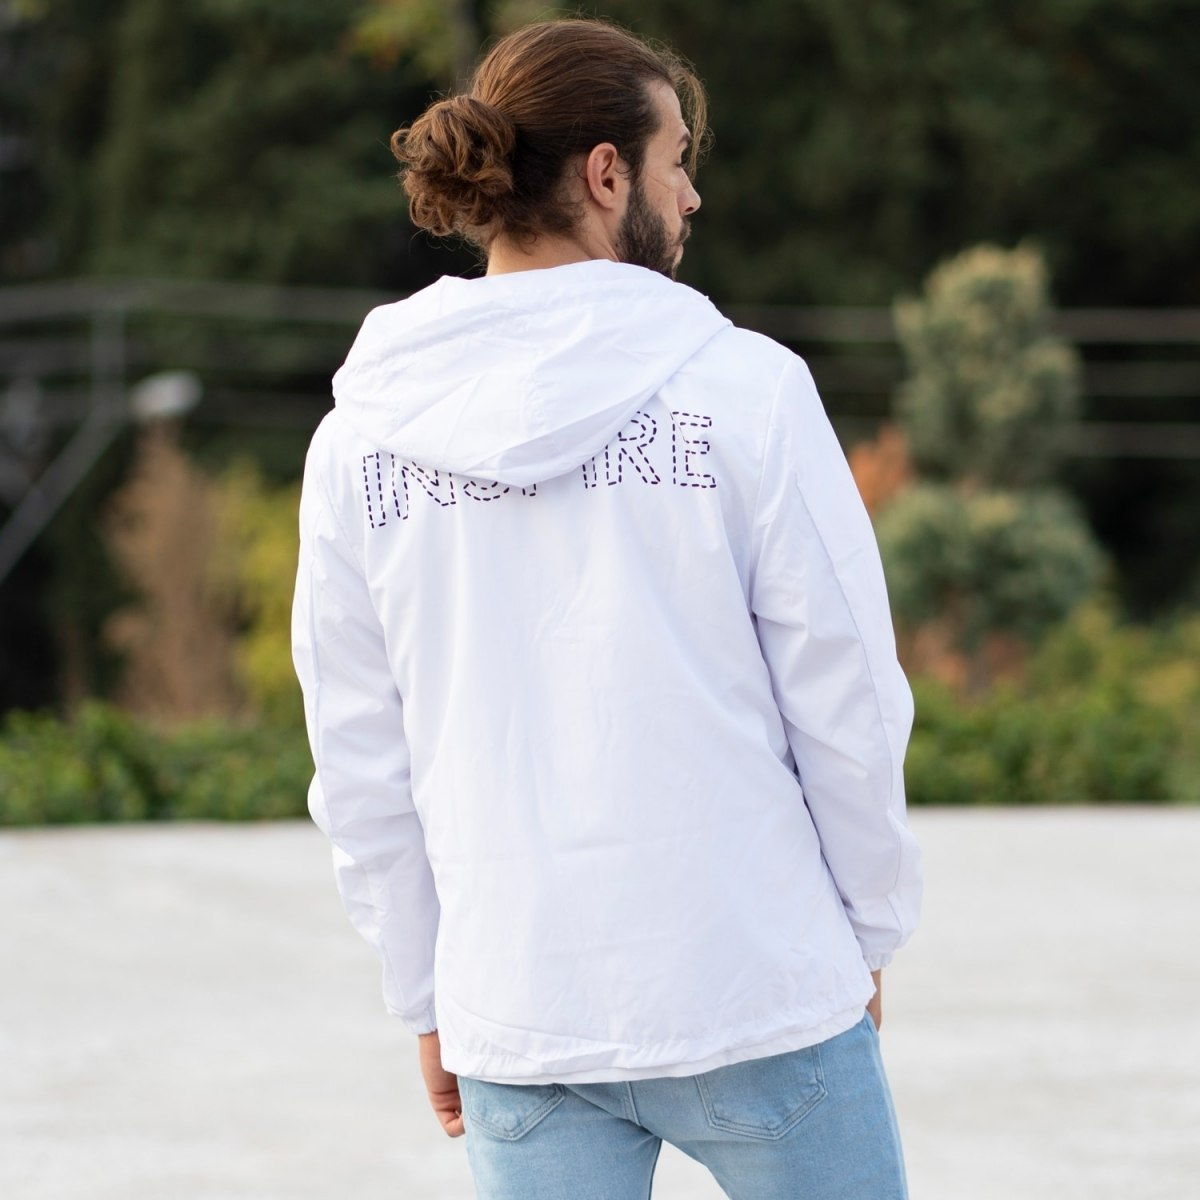 MV Autumn Collection Rainproof Hoodie with Details in White MV Jacket Collection - 5